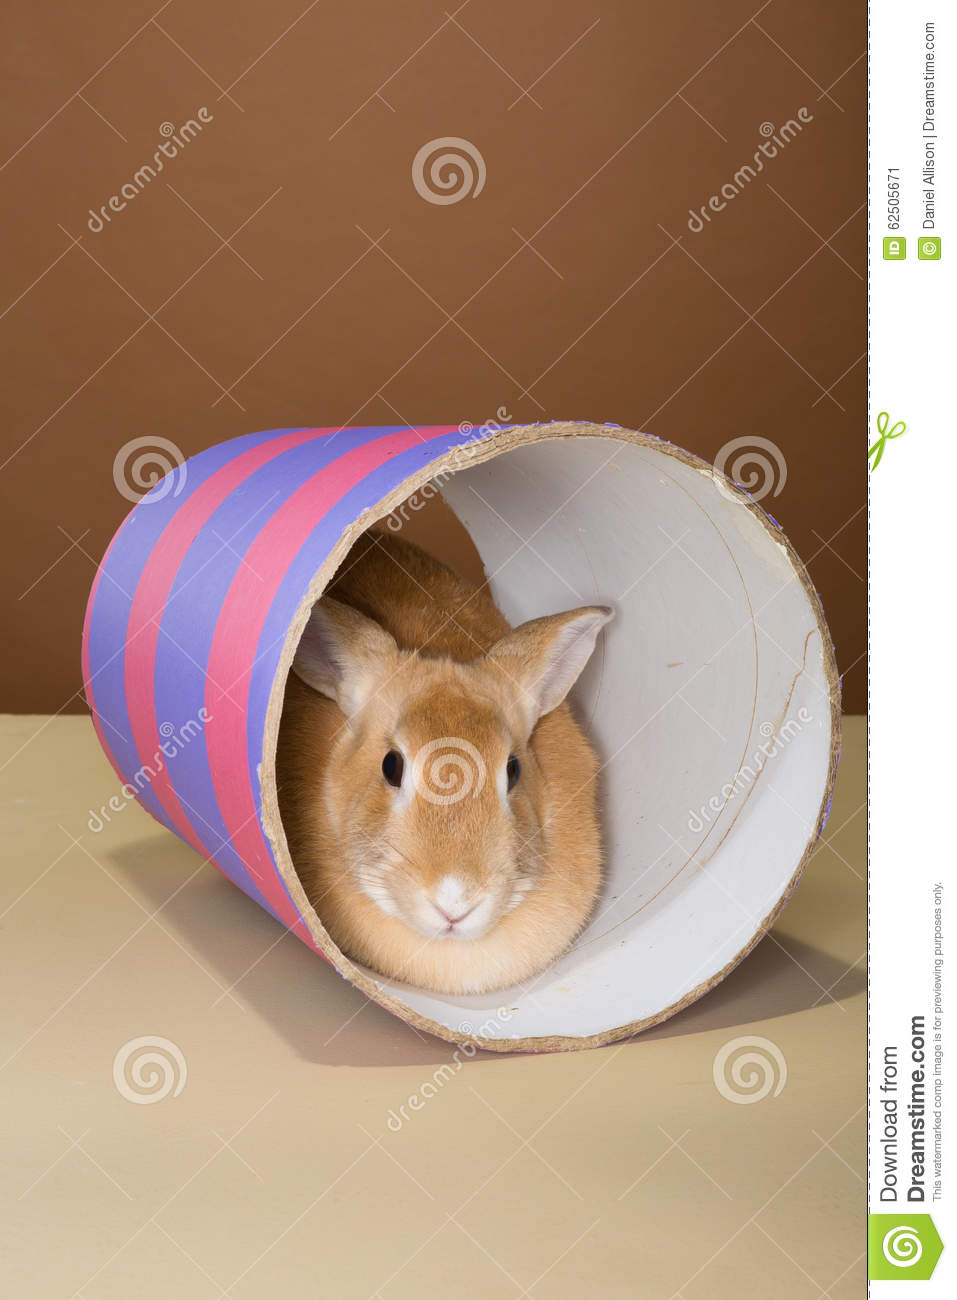 Bunny rabbit posing in a tube in a studio against a cream and brown setting